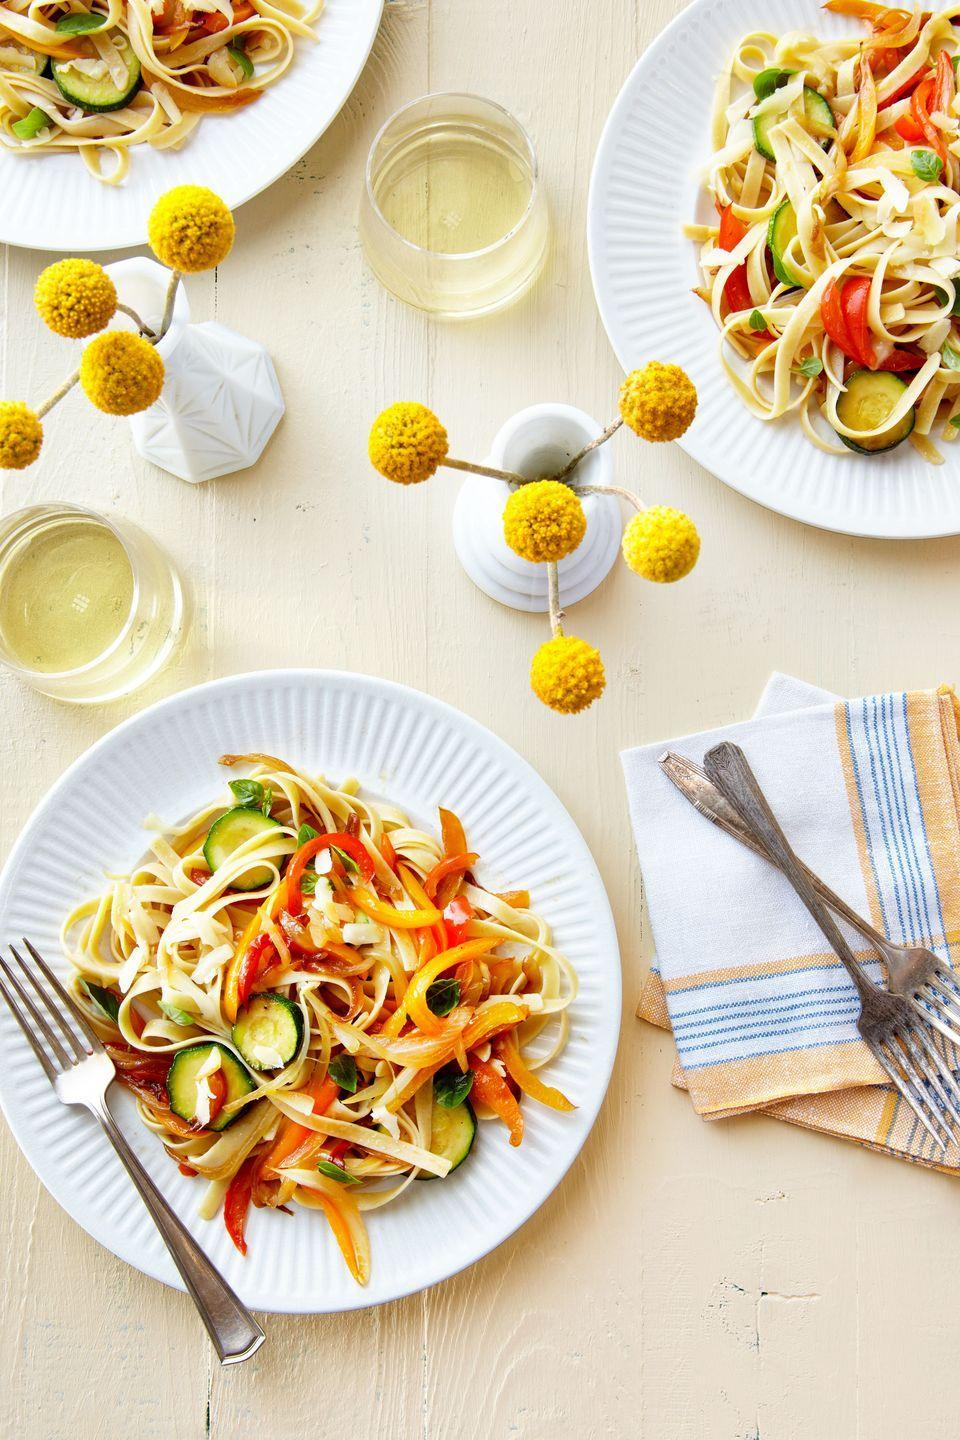 """<p>This fresh pasta dish puts a springtime twist on spaghetti night.</p><p><strong><a href=""""https://www.countryliving.com/food-drinks/recipes/a38072/pasta-with-sauteed-peppers-zucchini-and-smoked-mozzarella-recipe/"""" rel=""""nofollow noopener"""" target=""""_blank"""" data-ylk=""""slk:Get the recipe"""" class=""""link rapid-noclick-resp"""">Get the recipe</a>.</strong><br></p><p><a class=""""link rapid-noclick-resp"""" href=""""https://www.amazon.com/Kitchen-Tools-Stainless-Steel-Colander/dp/B014DTX0LY/?tag=syn-yahoo-20&ascsubtag=%5Bartid%7C10050.g.648%5Bsrc%7Cyahoo-us"""" rel=""""nofollow noopener"""" target=""""_blank"""" data-ylk=""""slk:SHOP COLANDERS"""">SHOP COLANDERS</a></p>"""